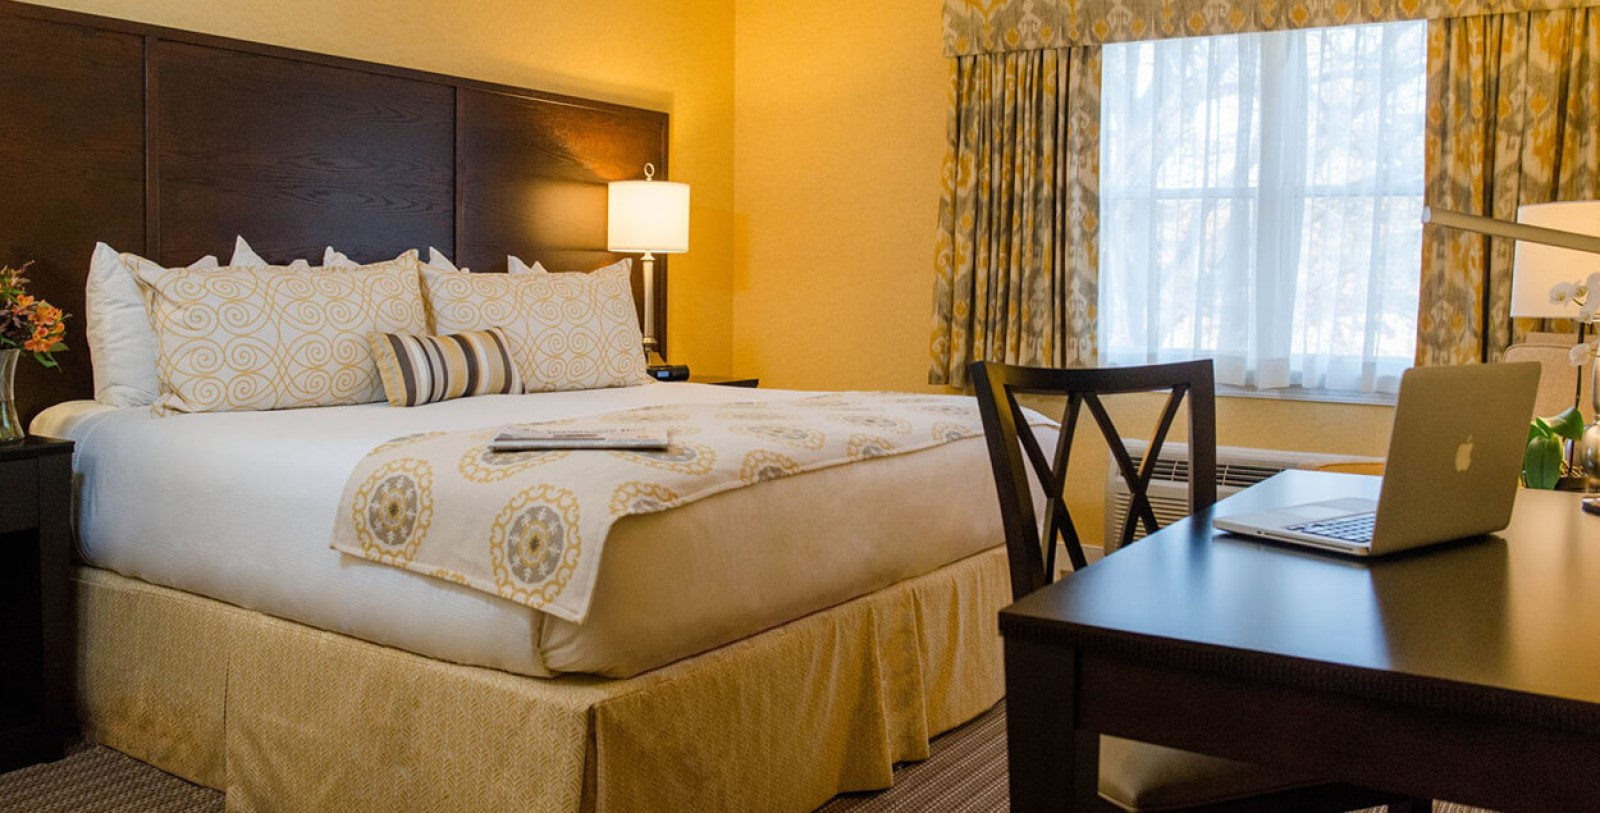 Image of Guestroom at the Airlie, 1899, Member of Historic Hotels of America, in Warrenton, Virginia, Location Map